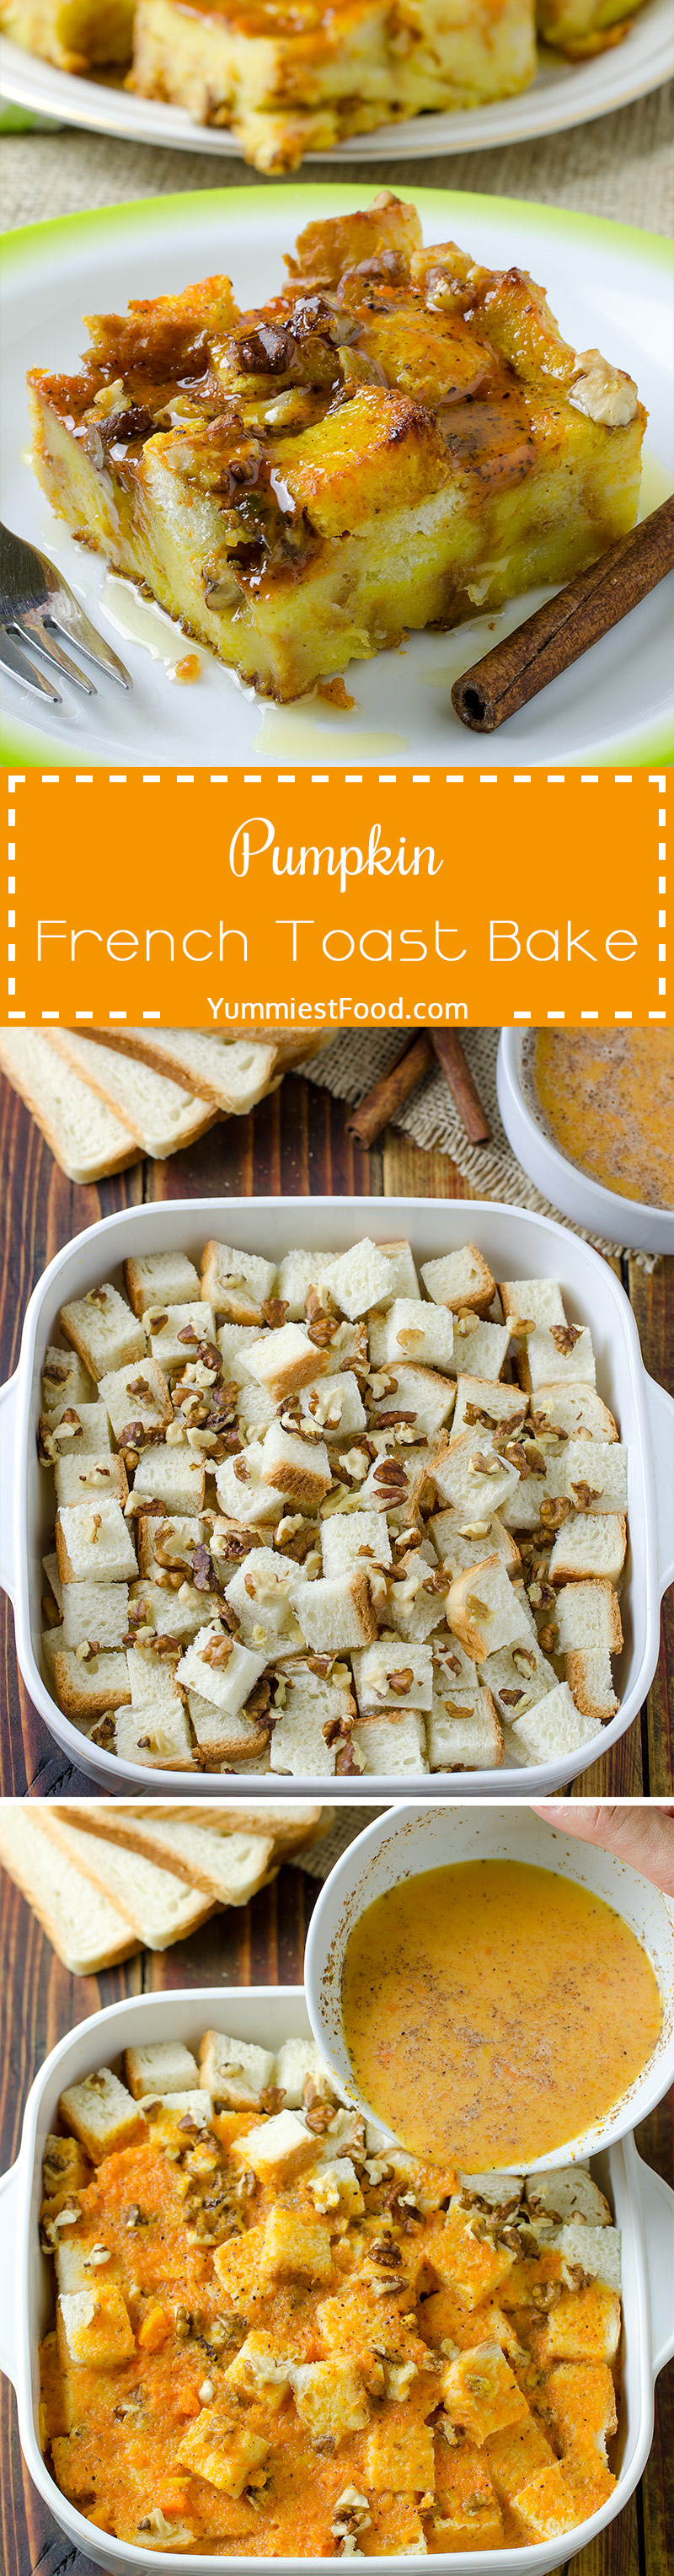 EASY PUMPKIN FRENCH TOAST BAKE - Quick and Easy breakfast recipe